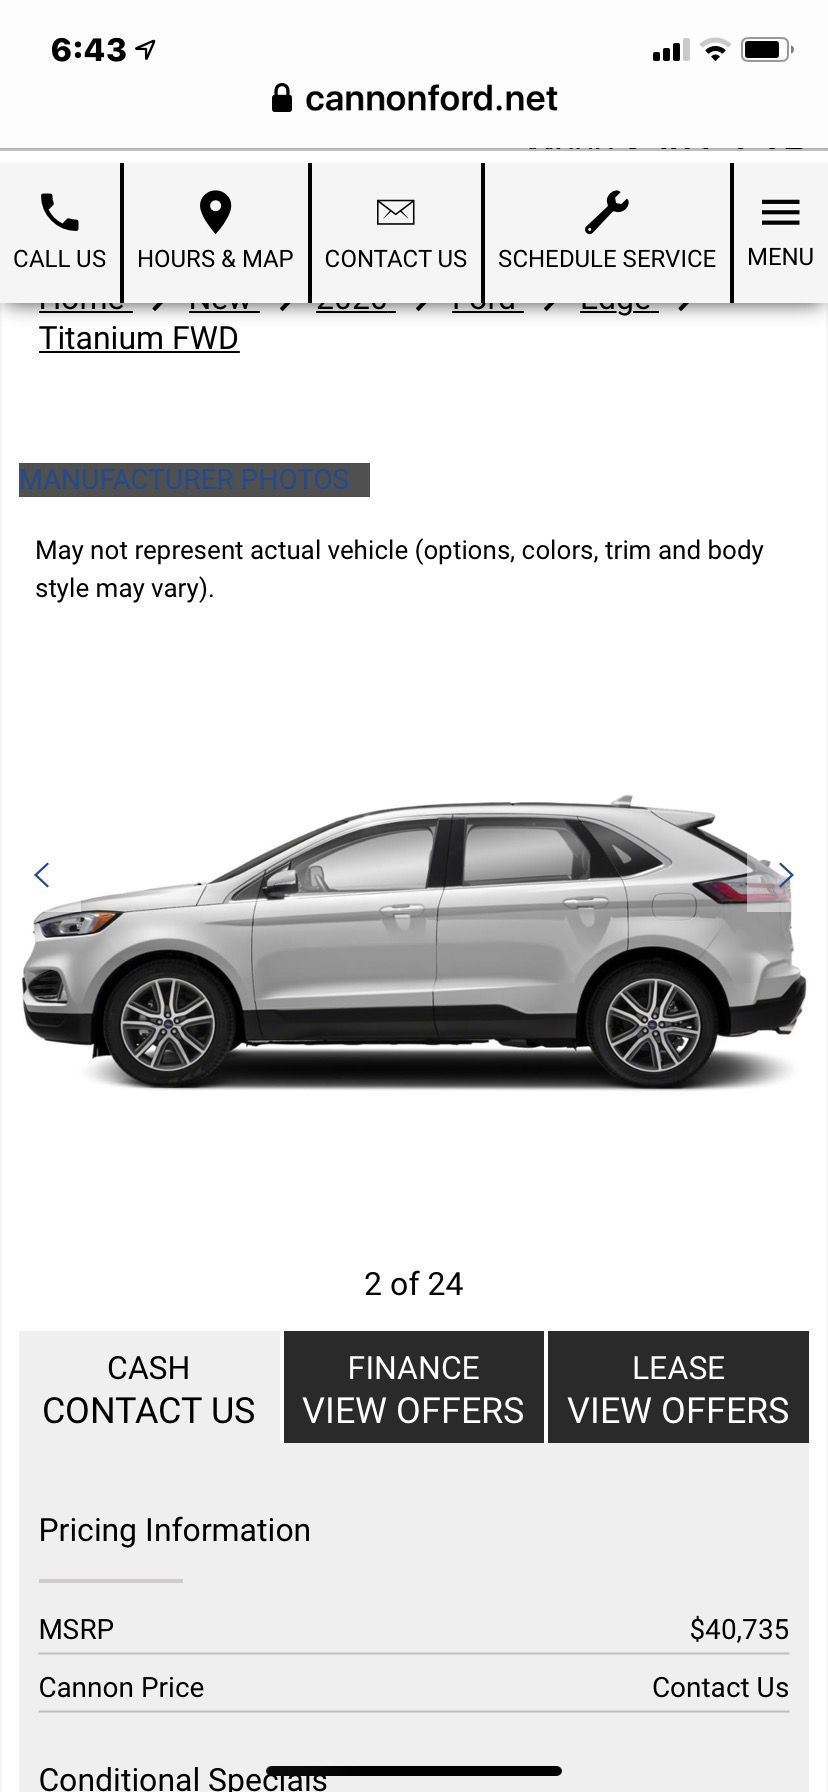 2020 Ford edge in 2020 Ford edge, Ford, Edges